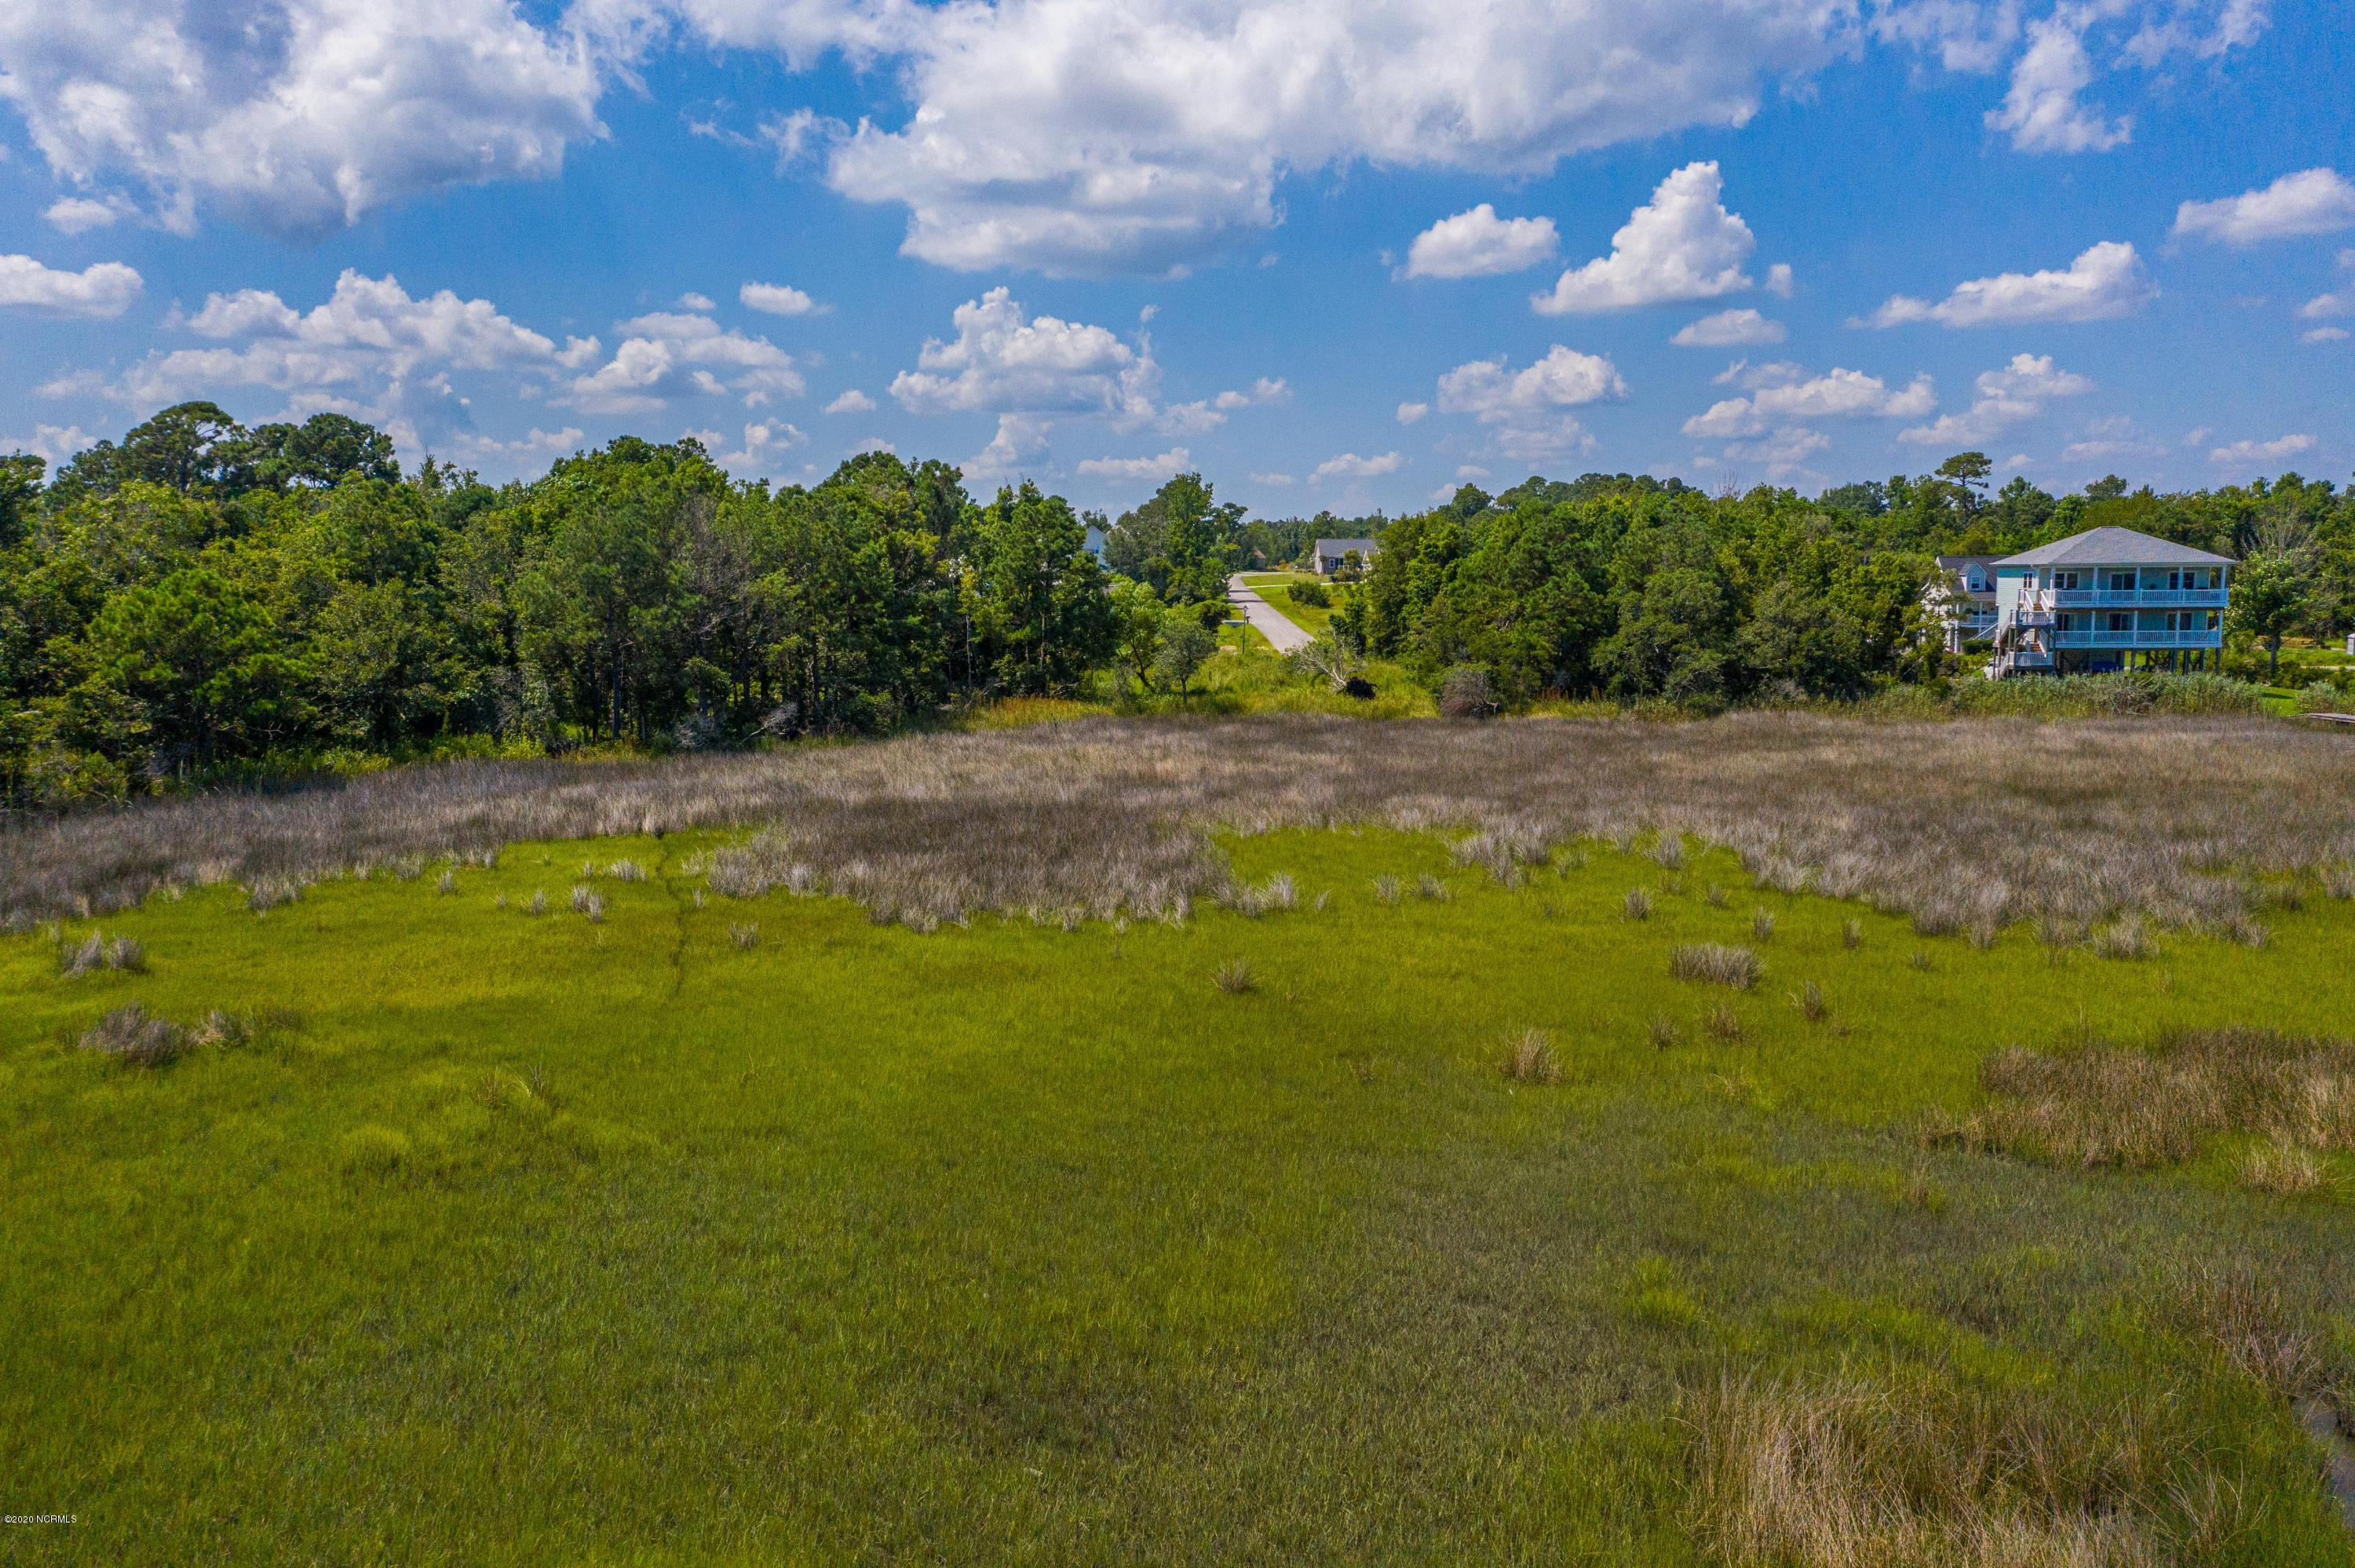 Lots 11/12 Topsail Watch Drive, Hampstead, North Carolina 28443, ,Residential land,For sale,Topsail Watch,100227618